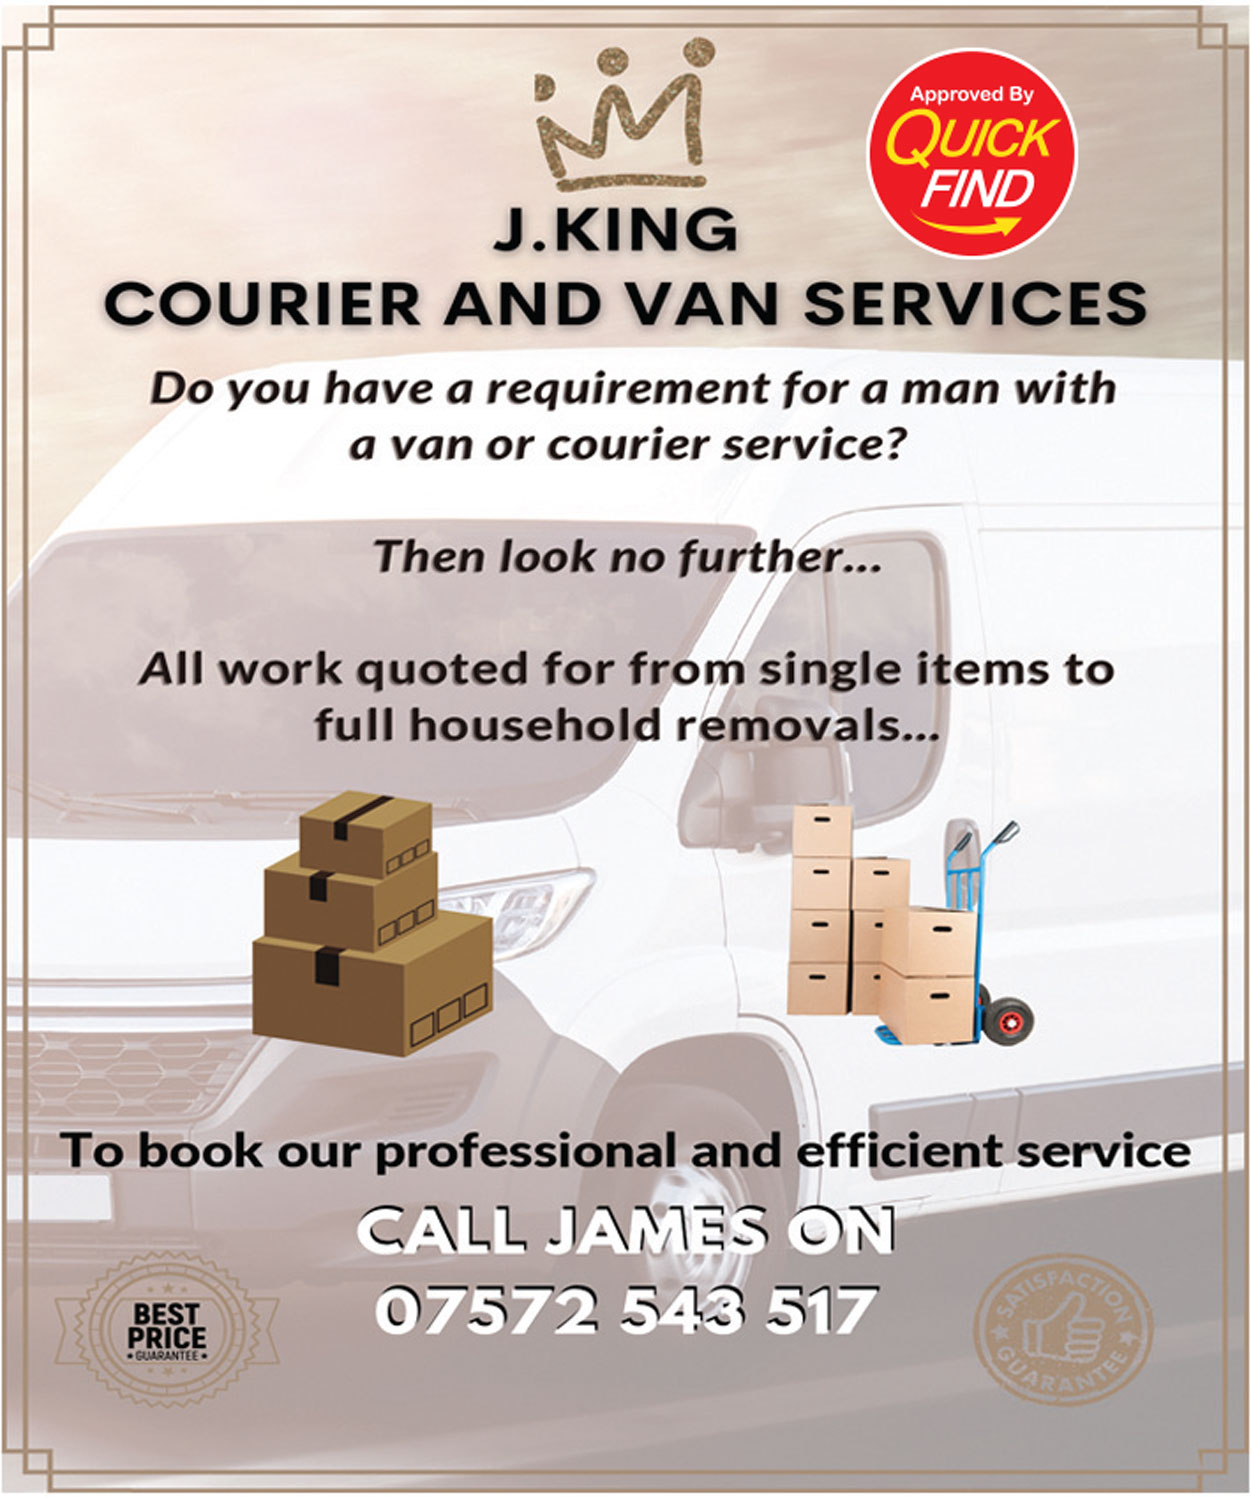 J. King Courier & Van Services